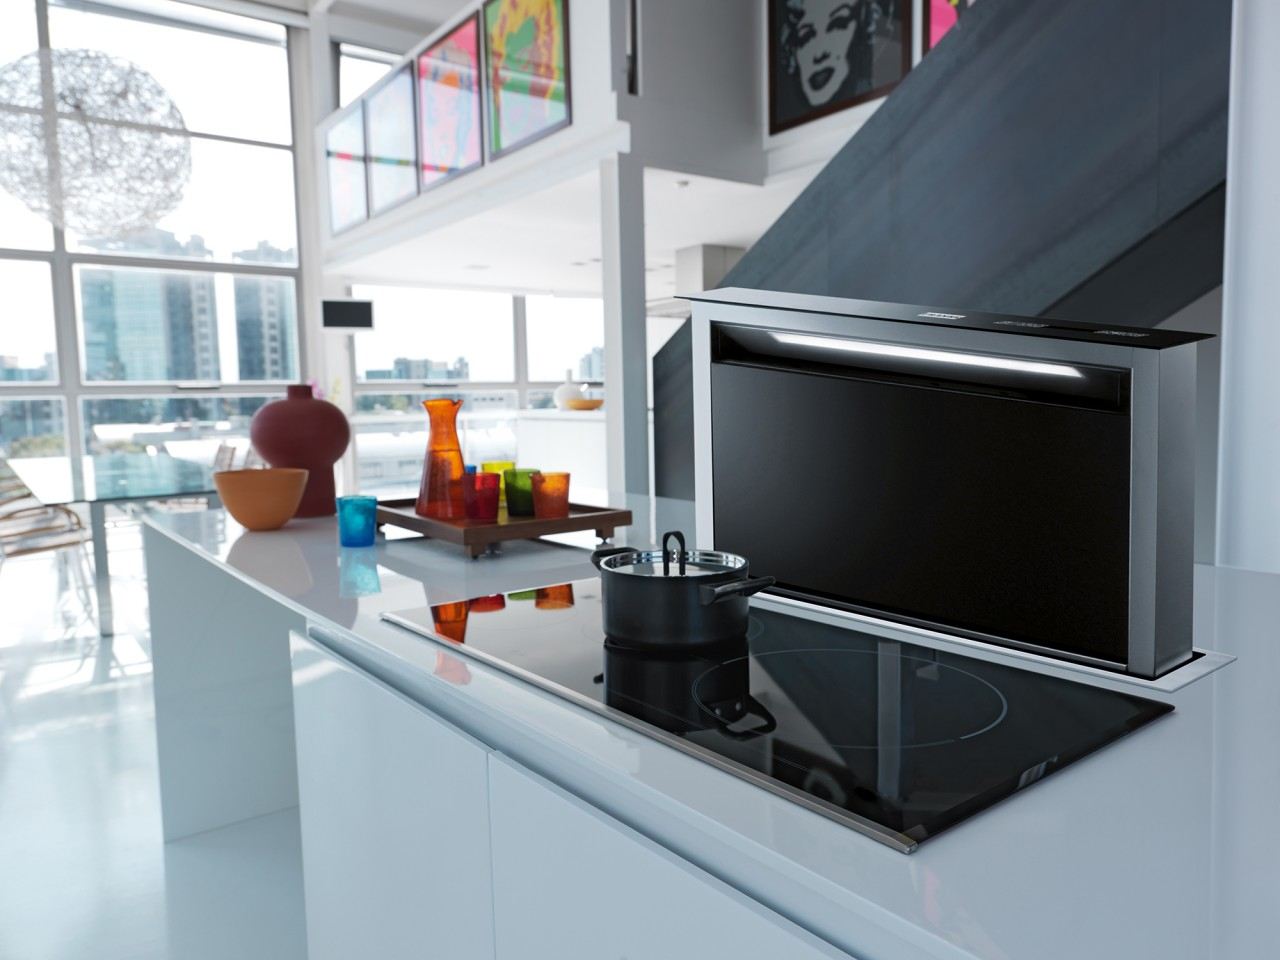 Franke Rangehood : the franke group consists of four businesses franke kitchen systems